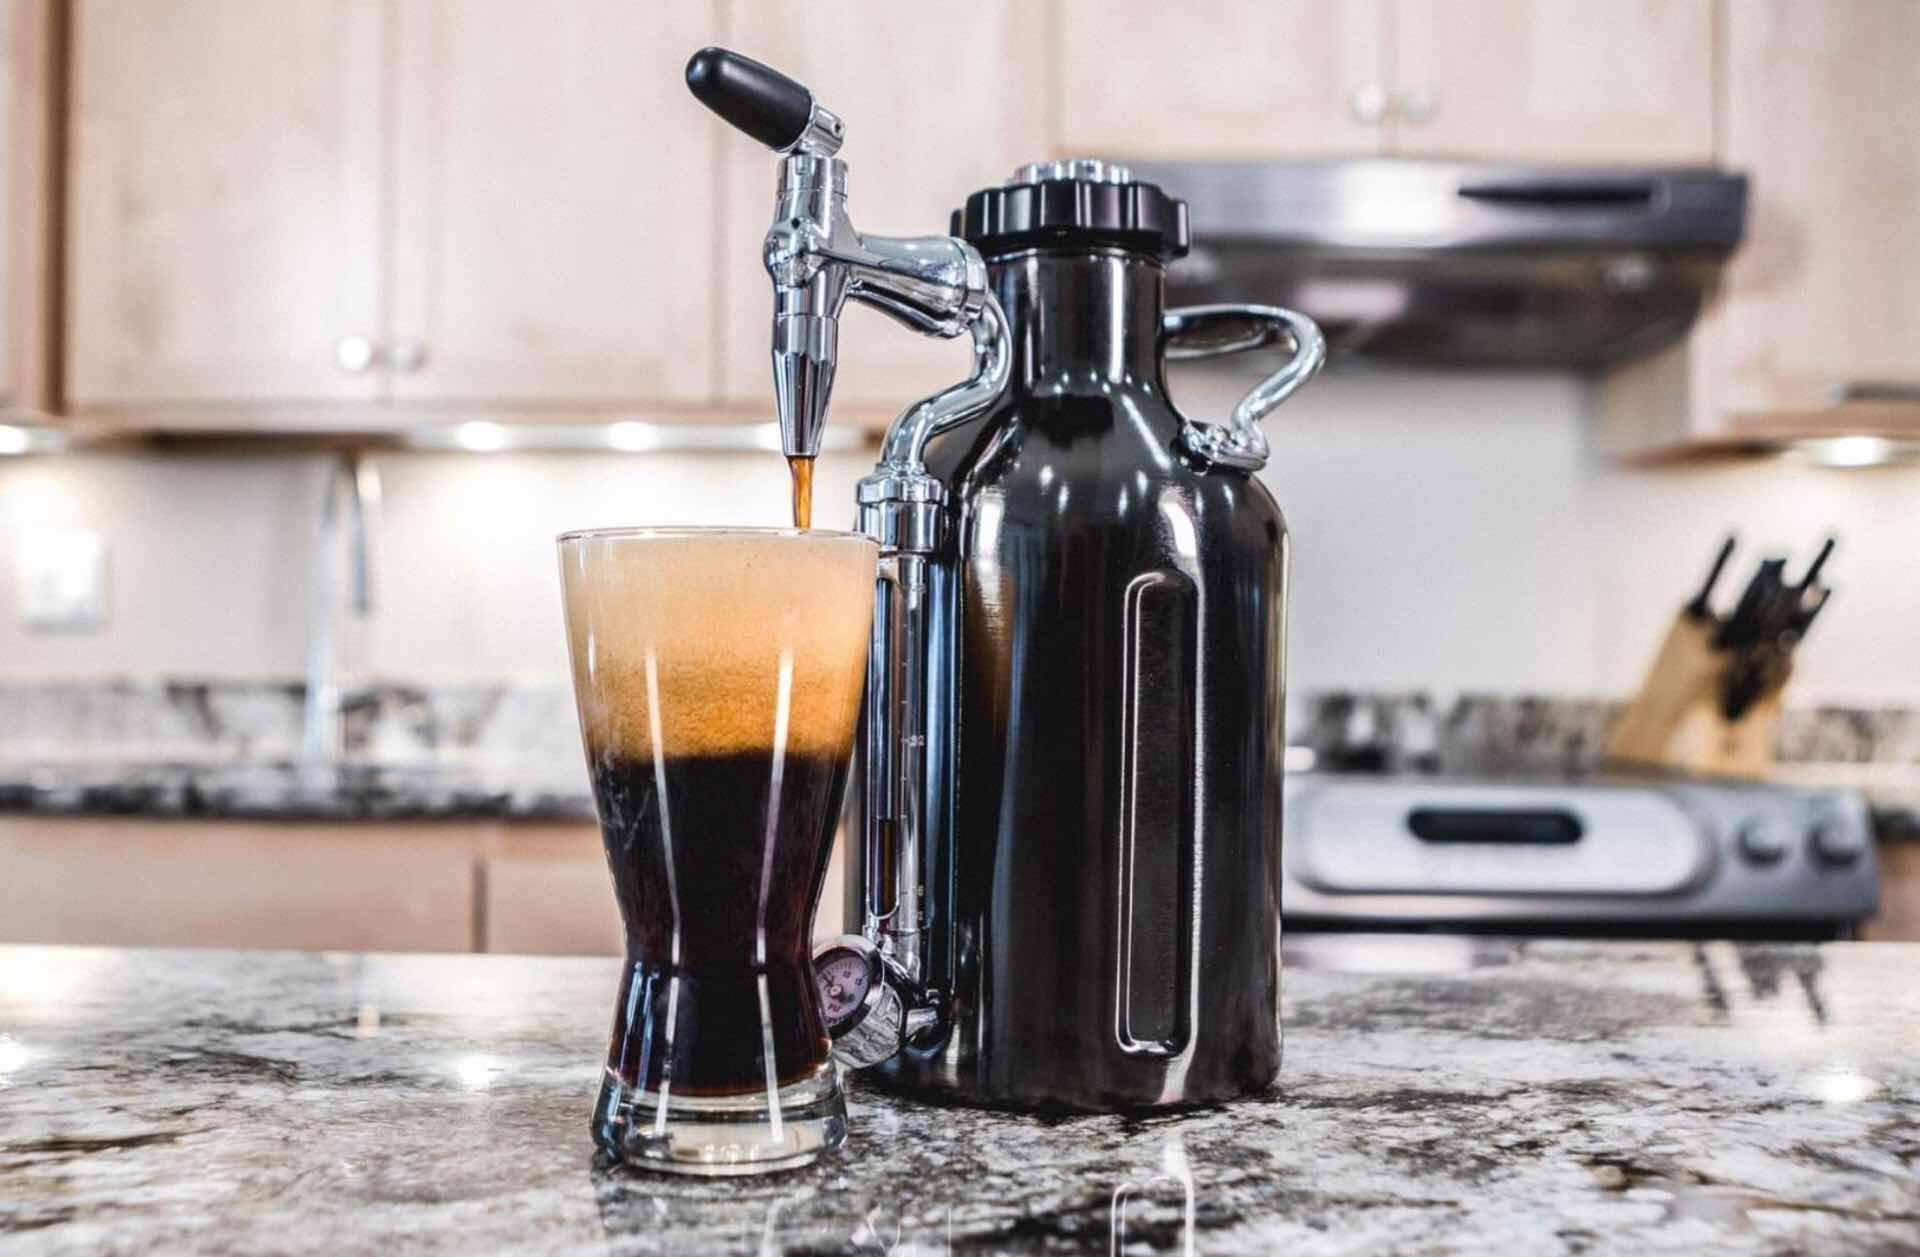 GrowlerWerks uKeg Nitro cold brew coffee maker. ($169)